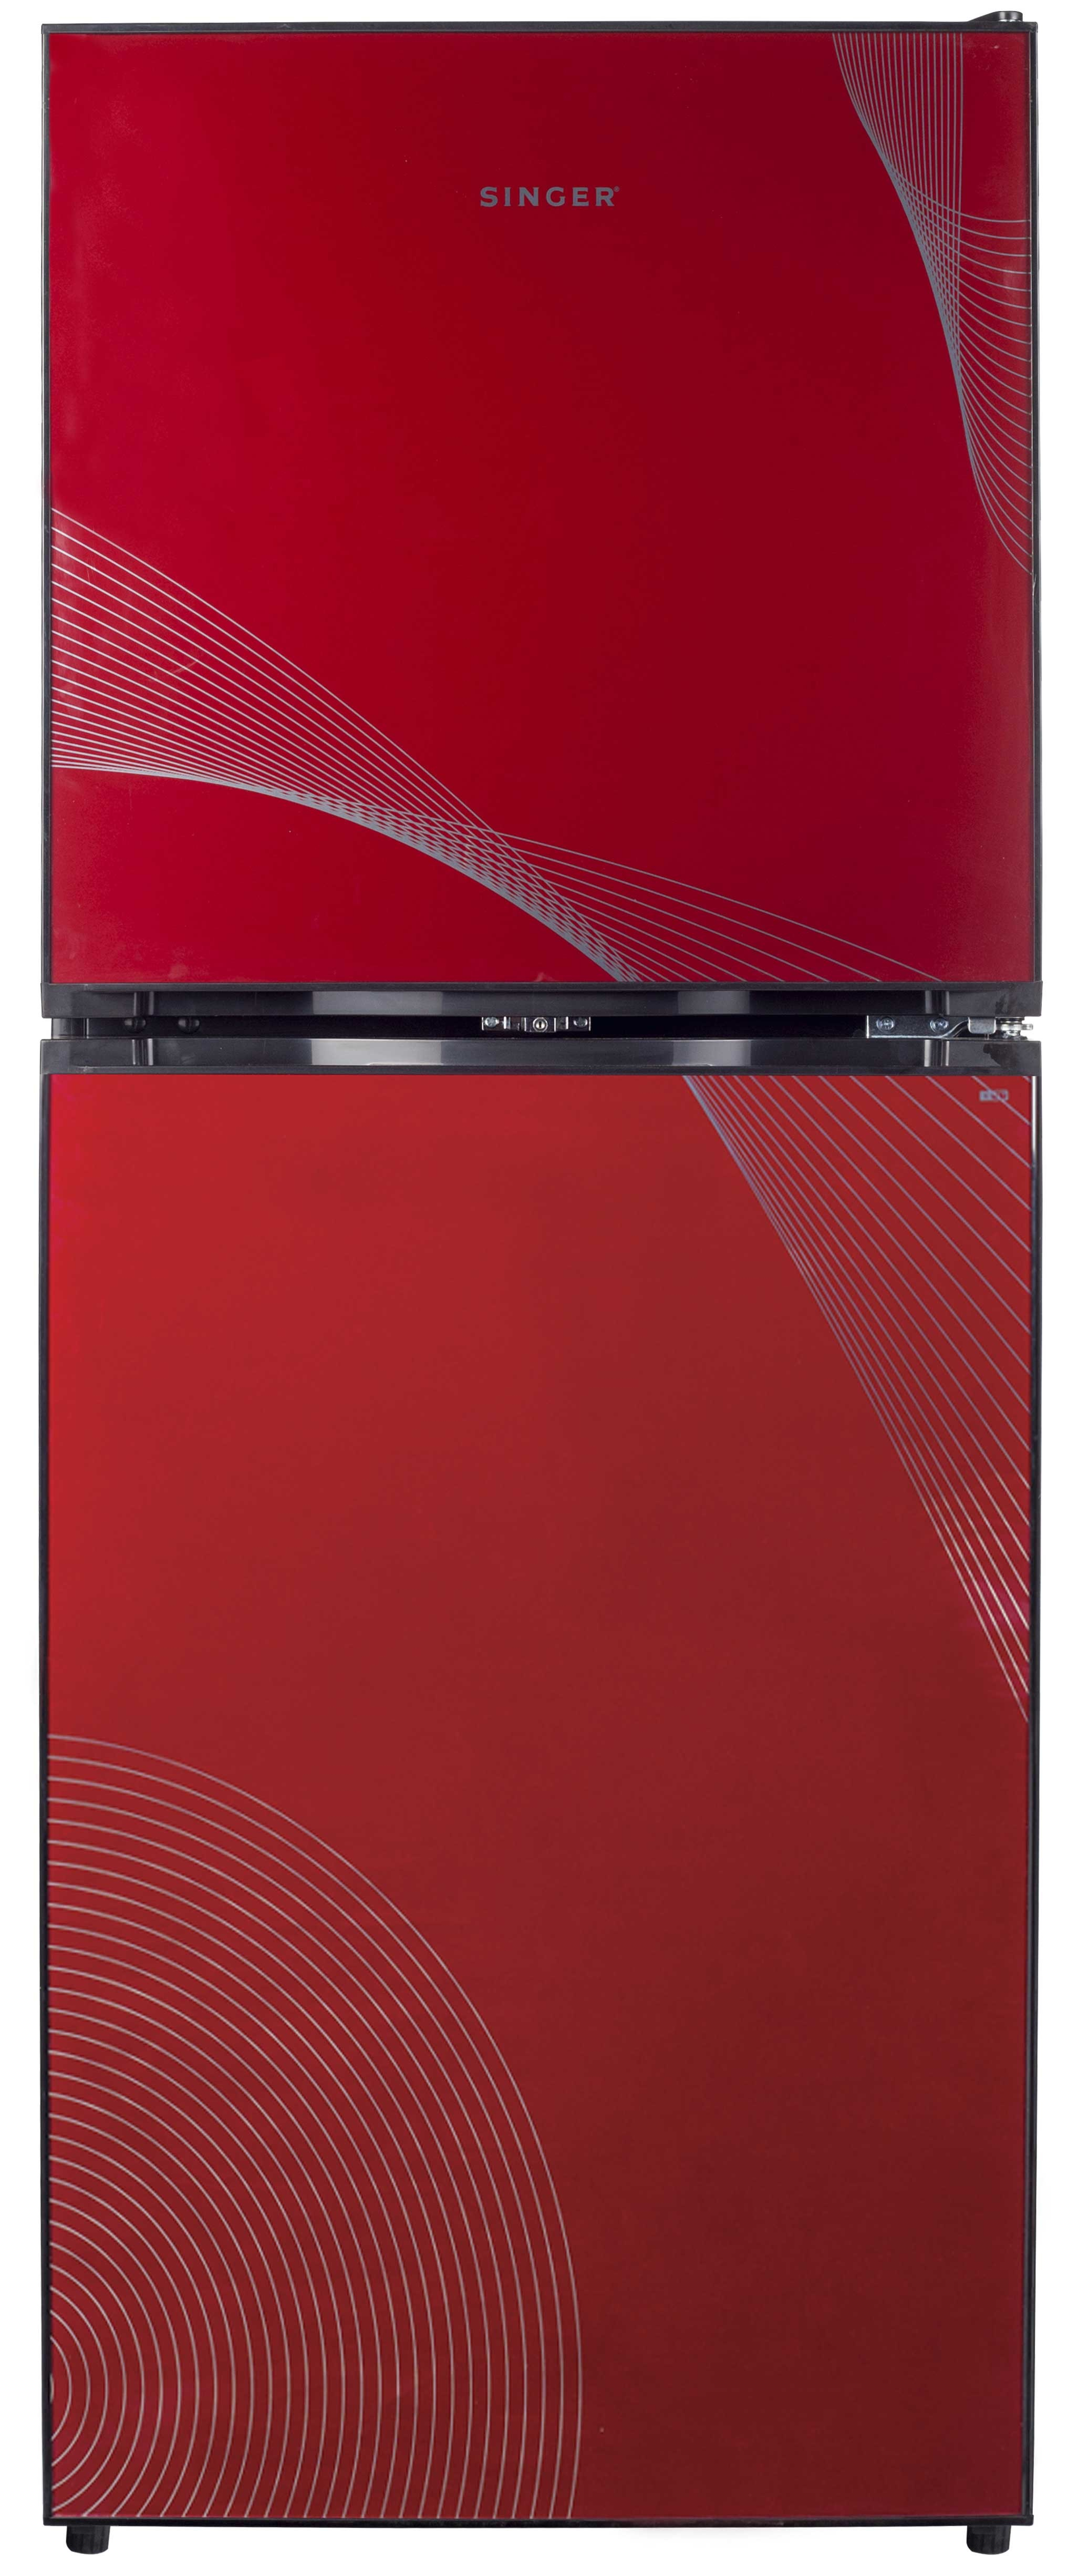 Singer Wd 210f Refrigerator Price In Bangladesh Reviews